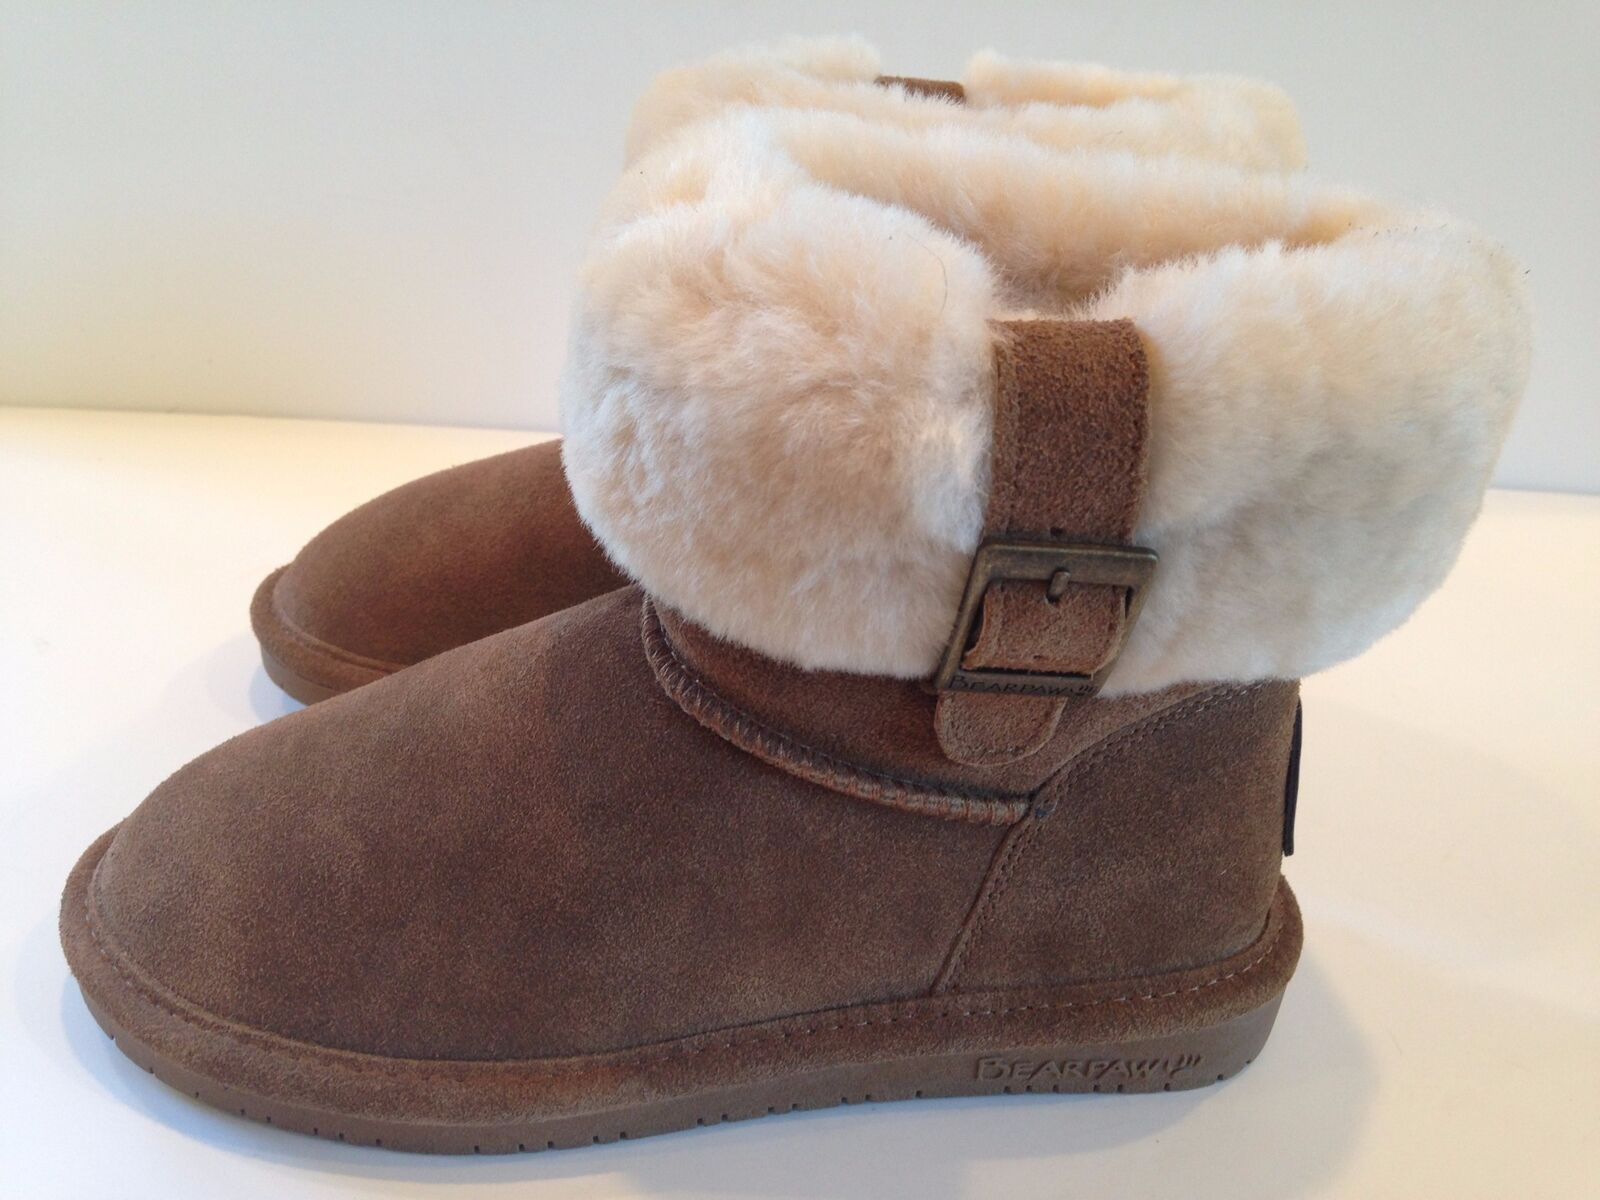 3c761fbe41ab Bearpaw Women s Abby 1257W Hickory Suede Blend Lining Size 5 Wool  obzyvj2913-Women s Boots